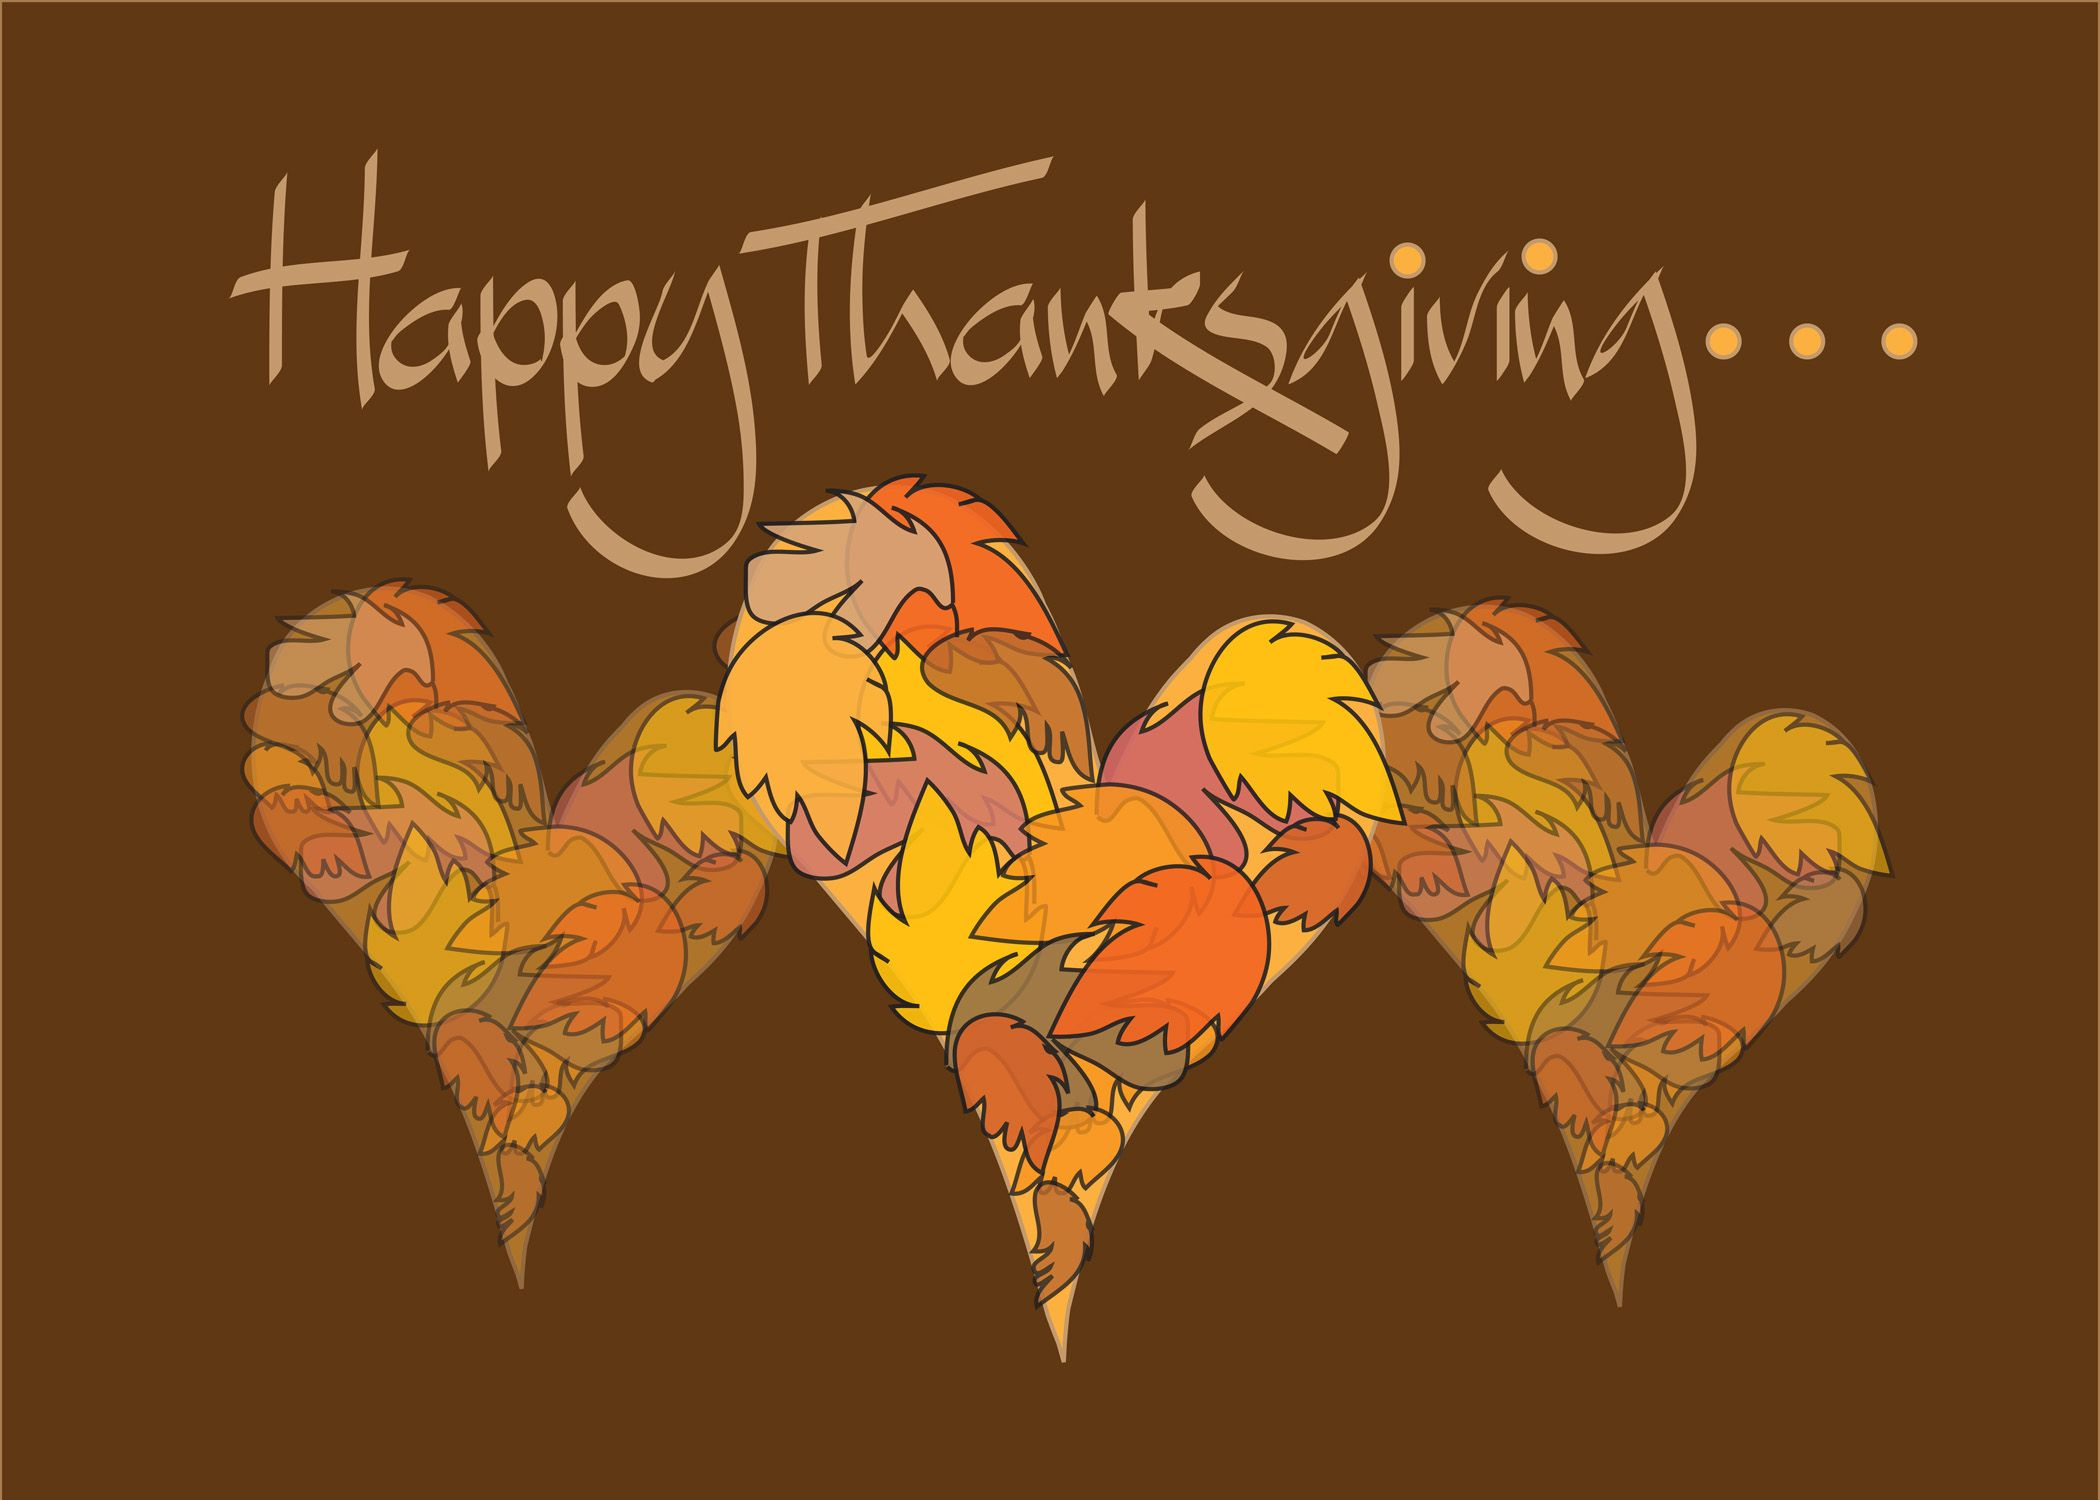 25 Happy Thanksgiving Day 2012 Hd Wallpapers Thanksgiving Pictures Happy Thanksgiving Wallpaper Thanksgiving Images